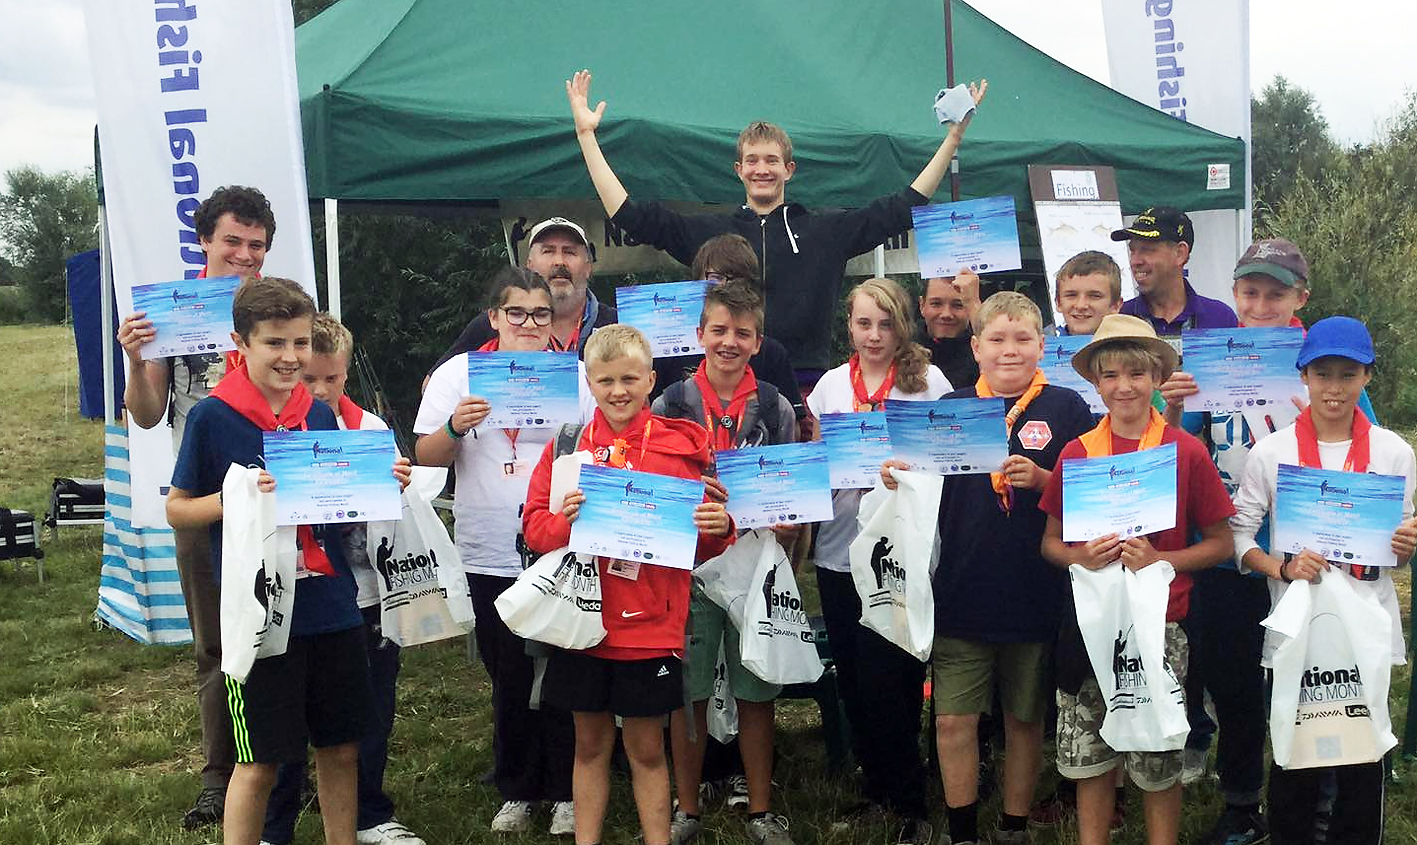 Another successful event at CamJam with the Cambridgeshire Scout organisation